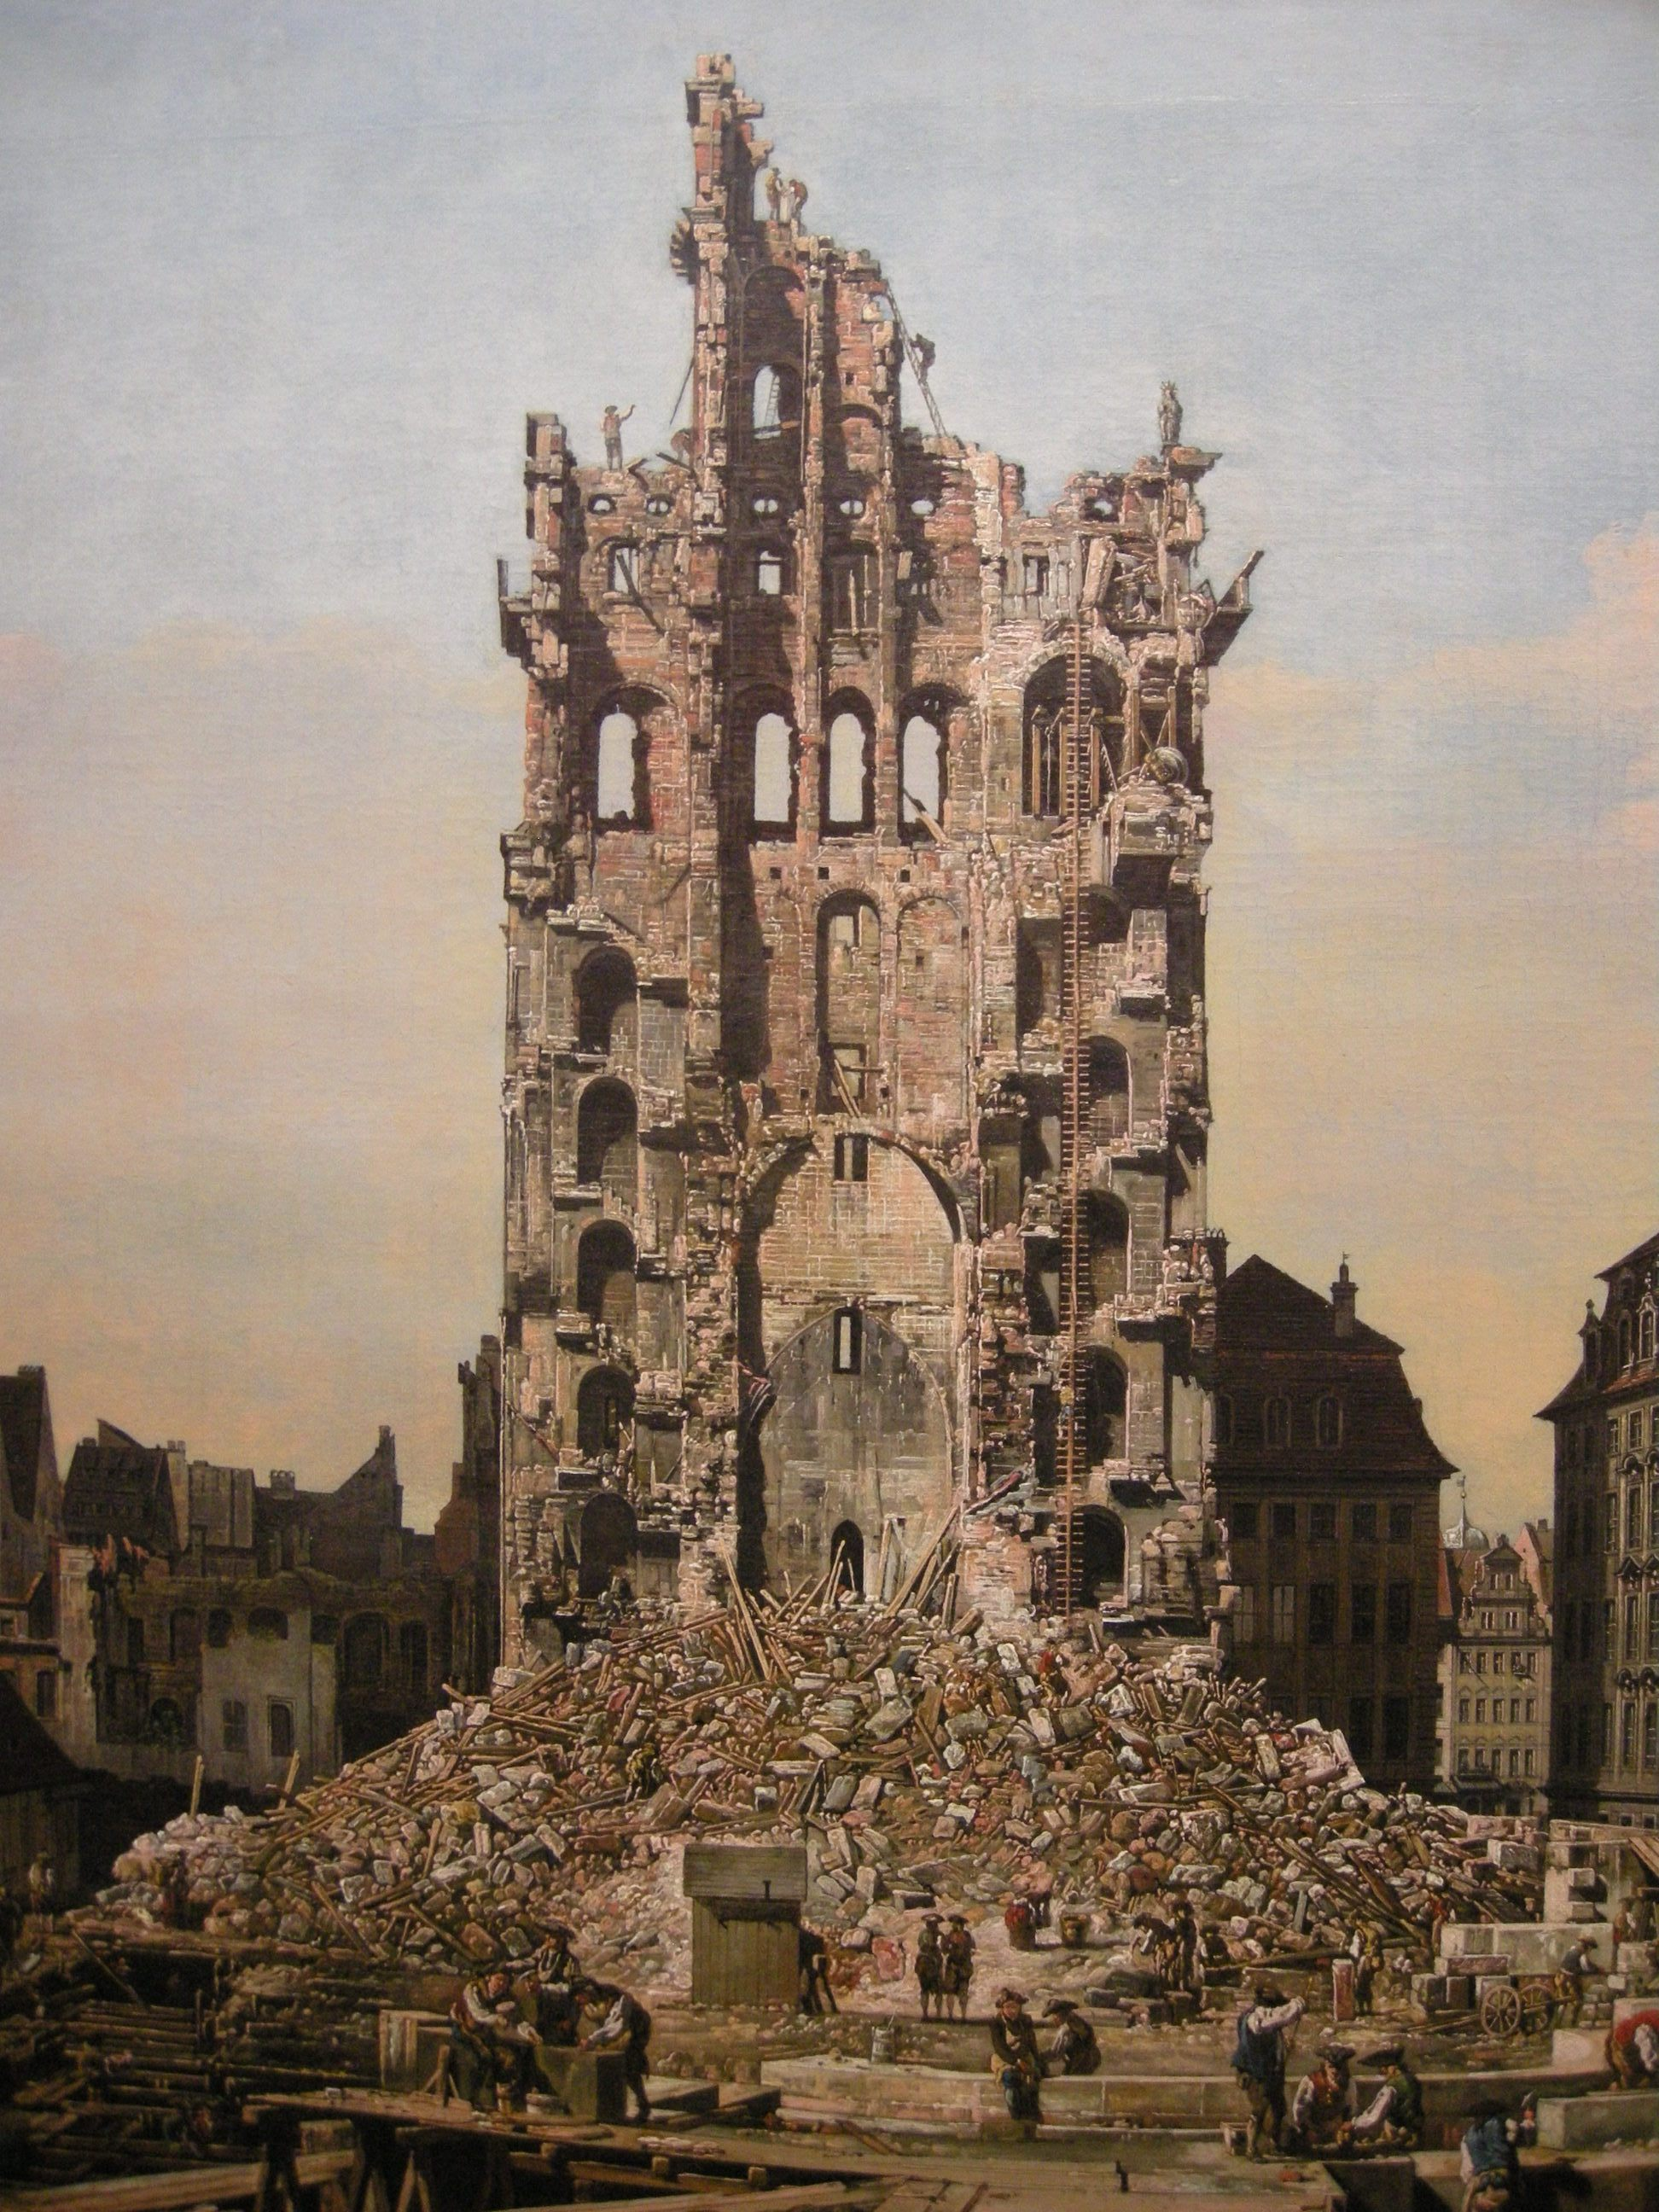 Building Ruins Painting 2769.03 Kb